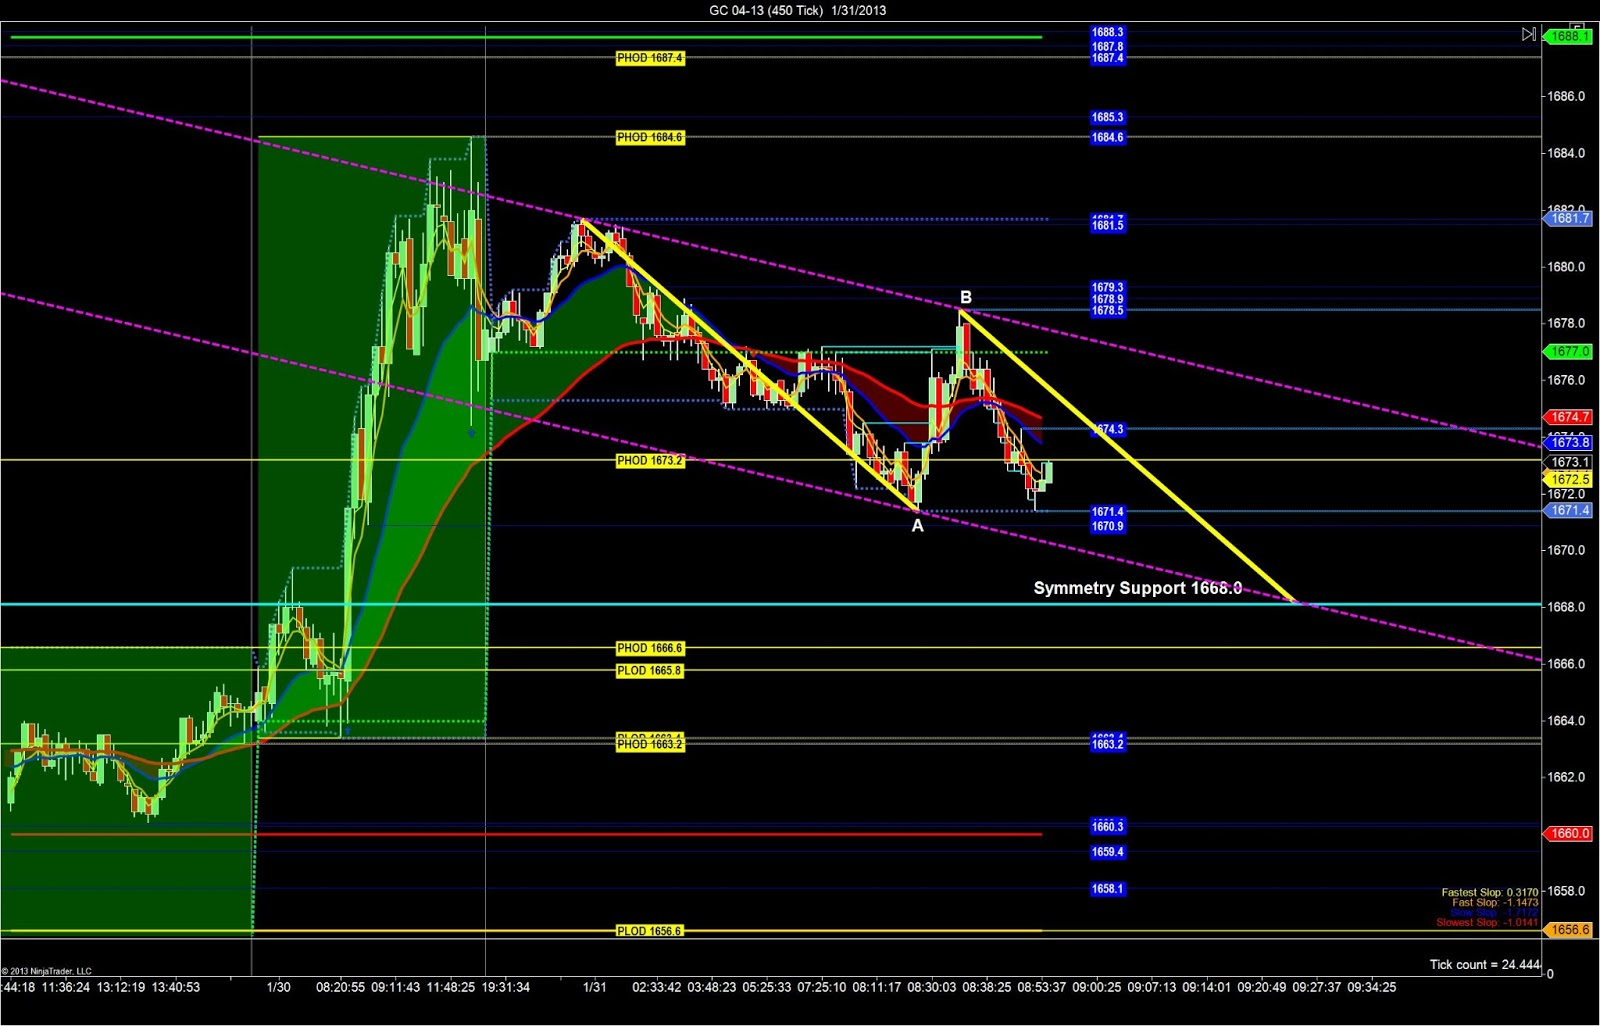 P nfp trading strategies